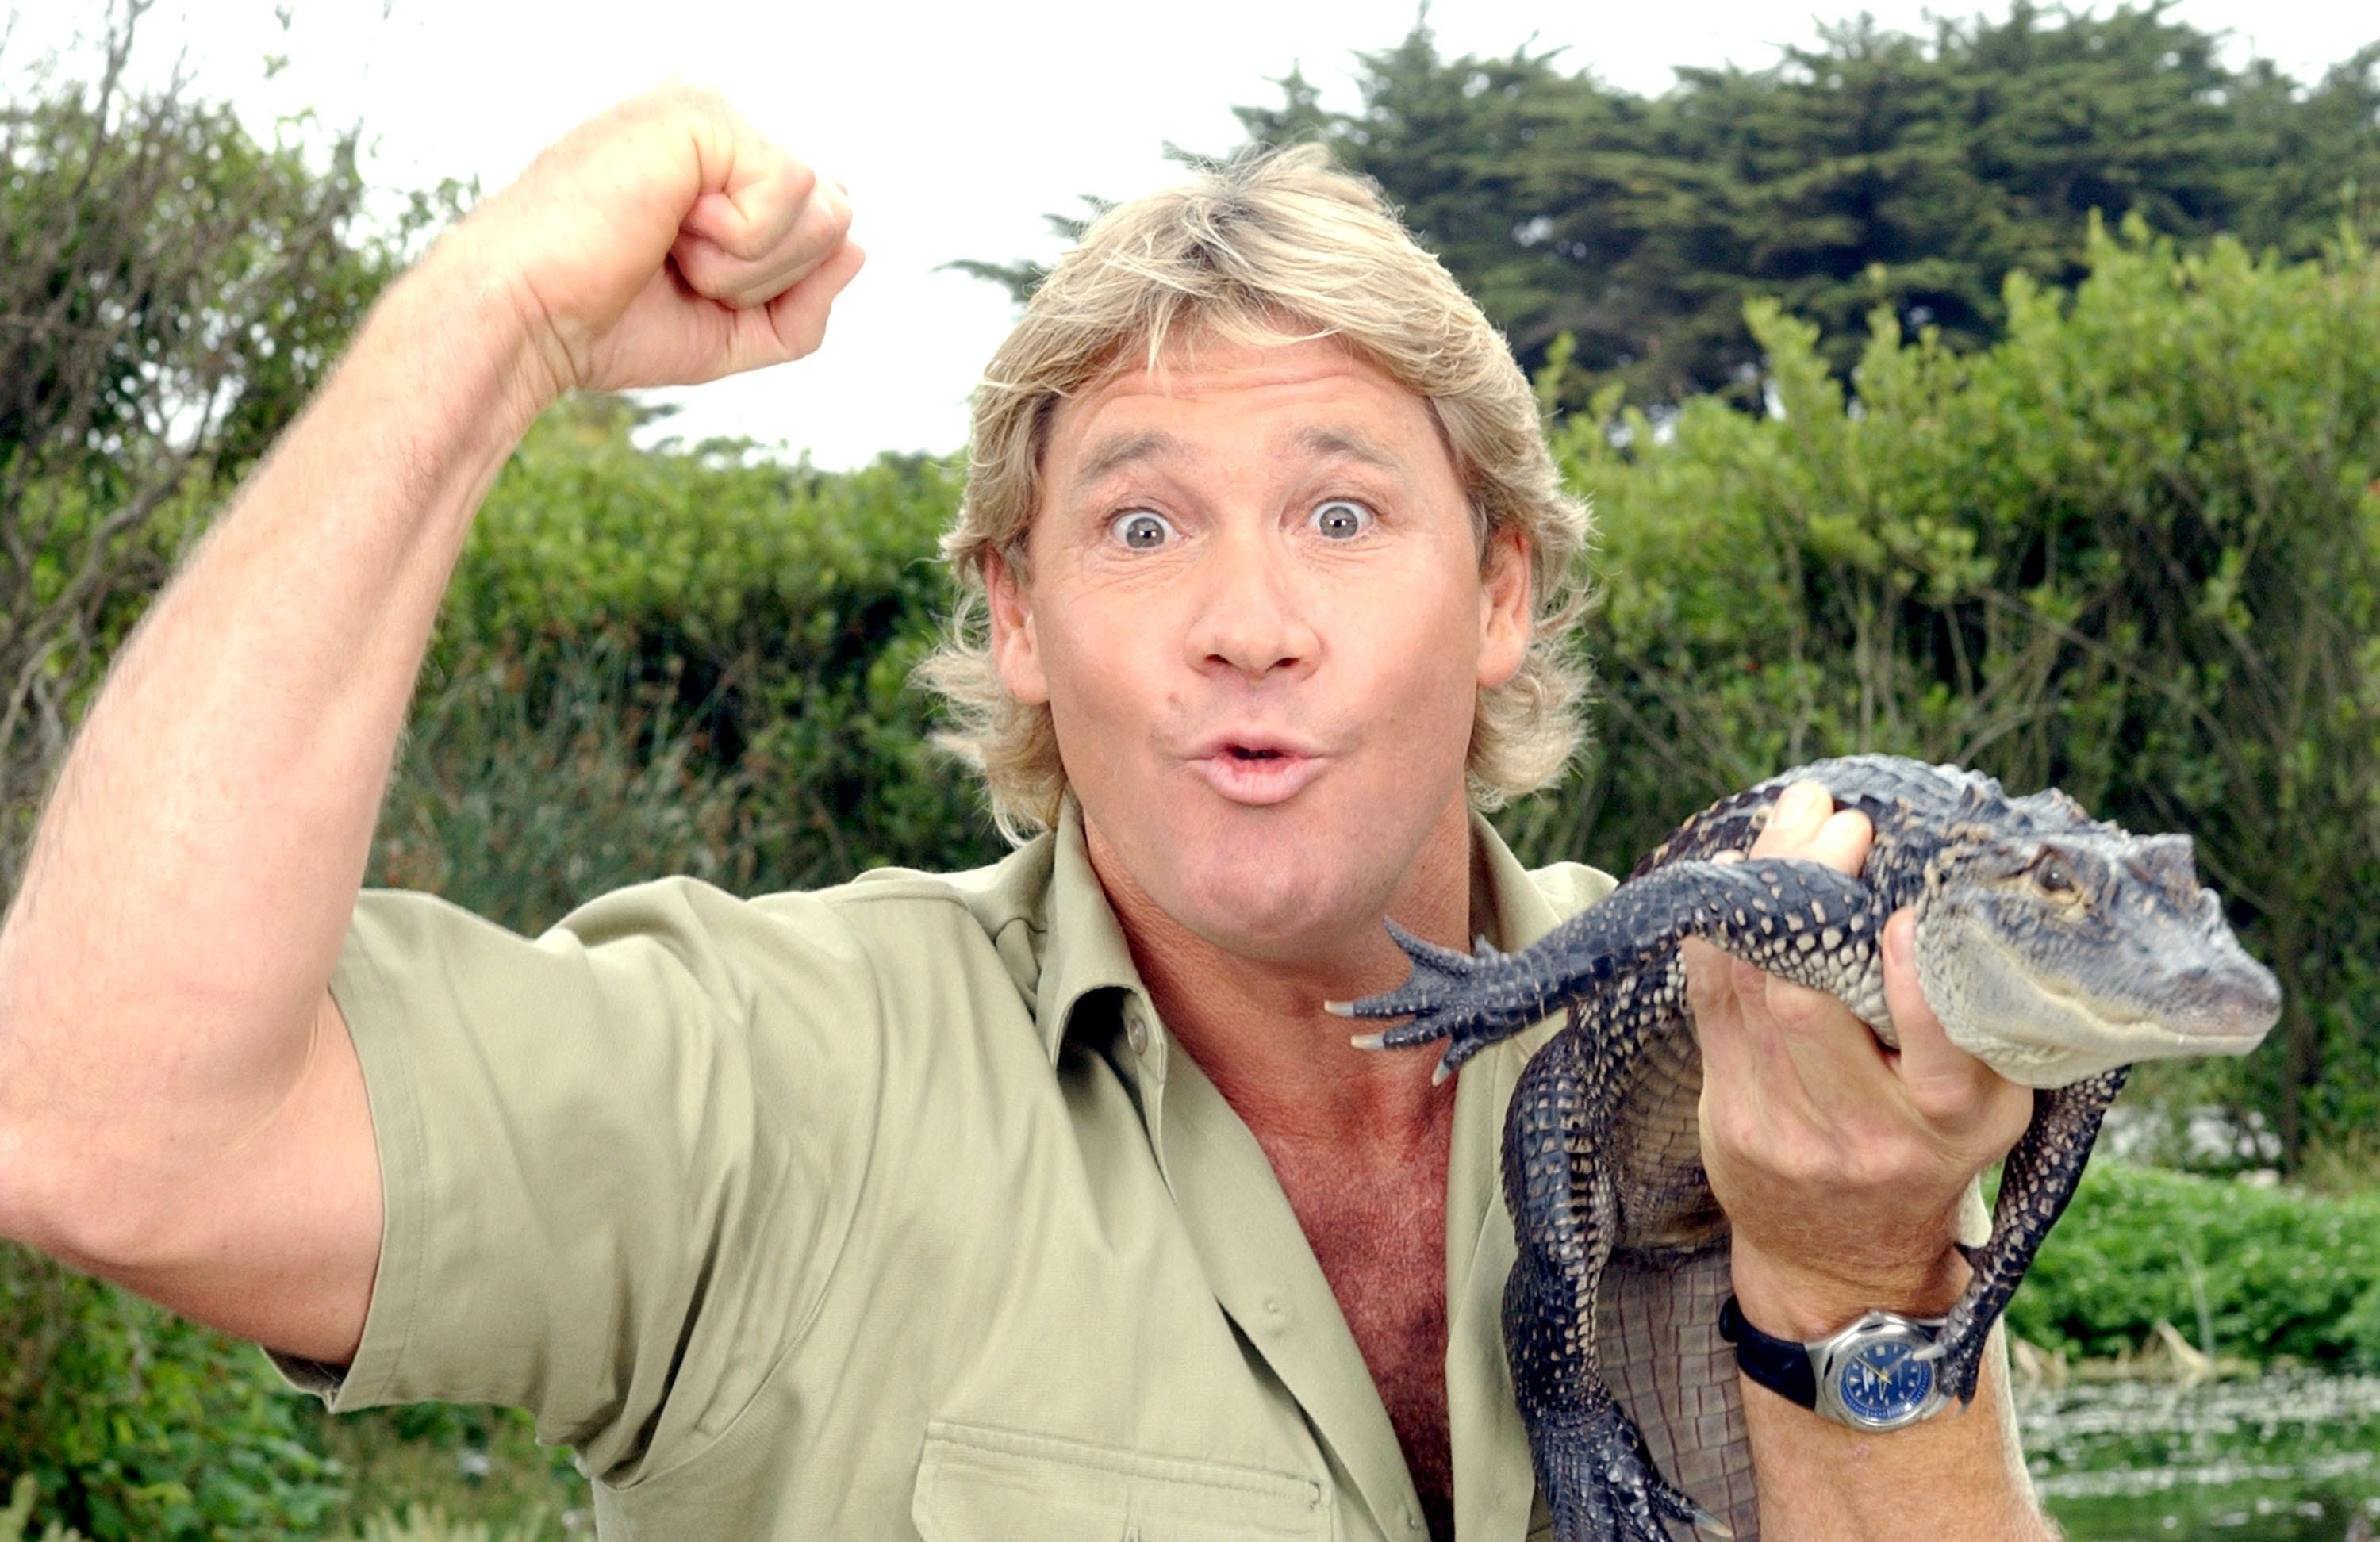 Twitter rips PETA for criticizing Steve Irwin's Google doodle on the late conservationist's birthday